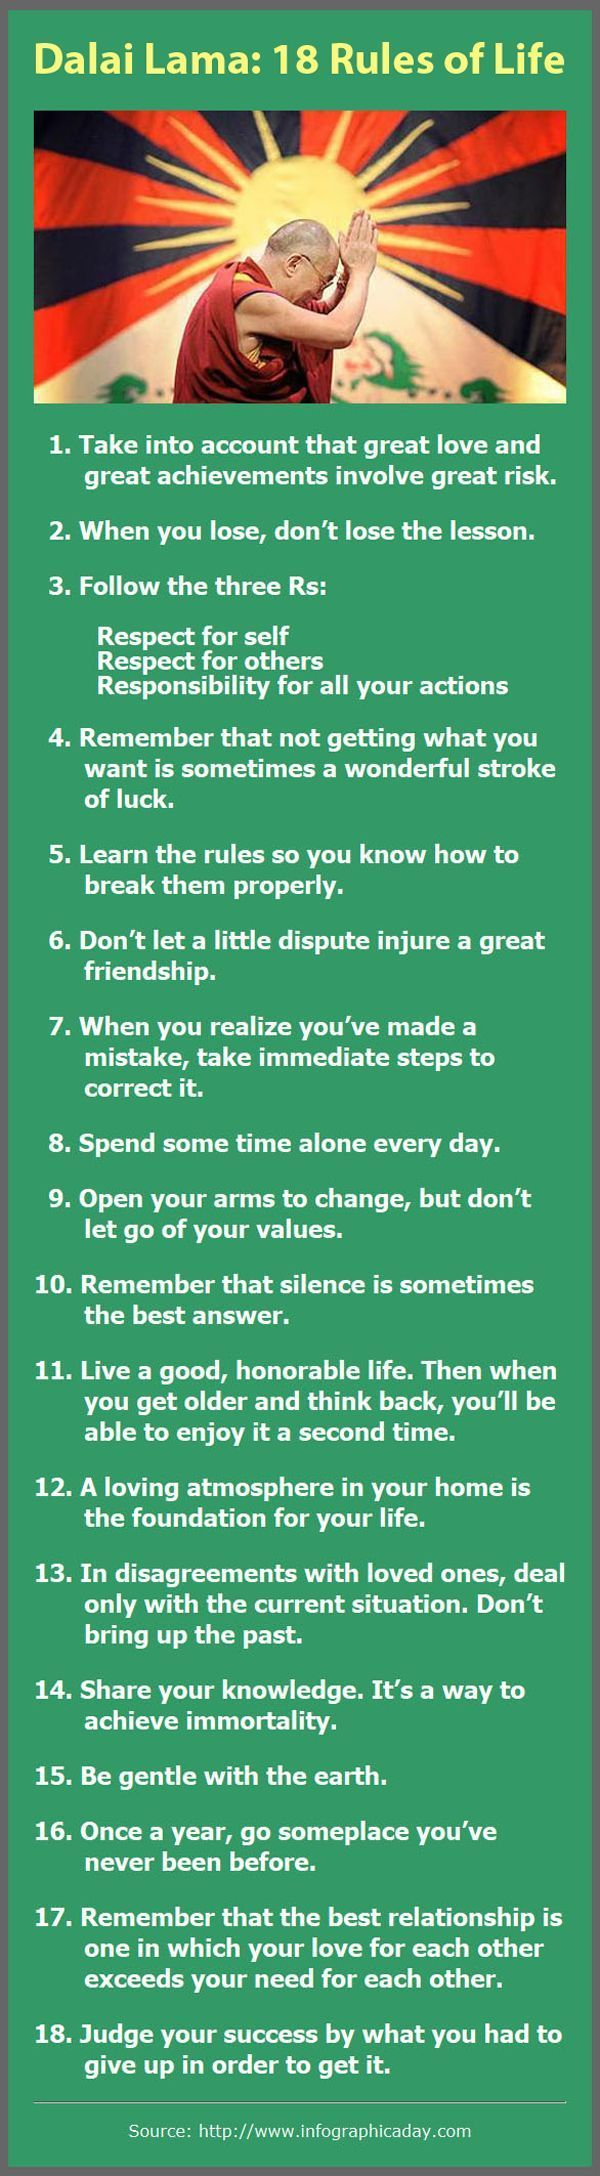 best ideas about dalay lama inspiring people dalai lama 18 rules of life